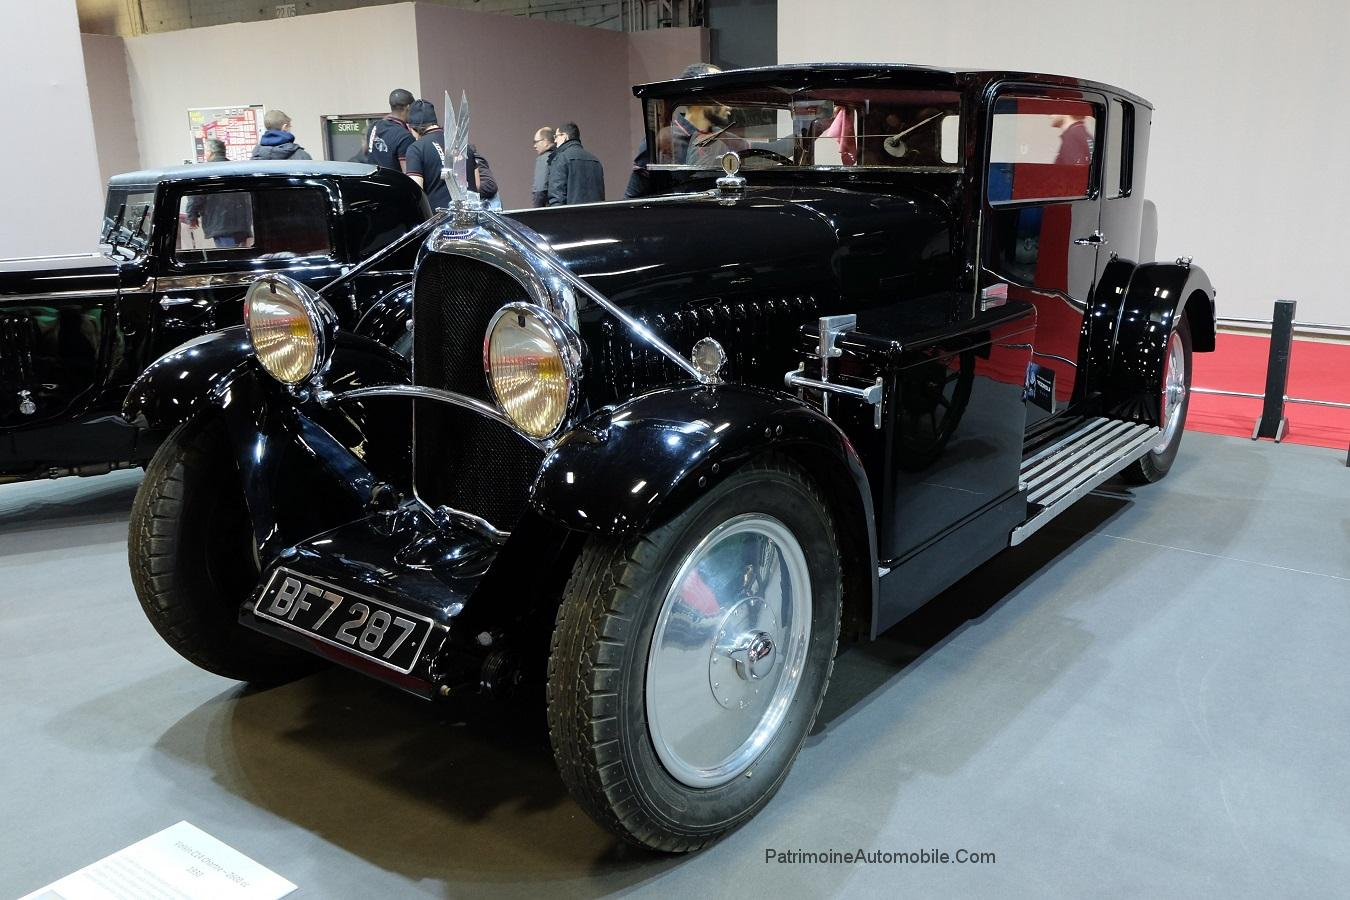 voisin c14 chartre de 1931 patrimoine automobile com. Black Bedroom Furniture Sets. Home Design Ideas